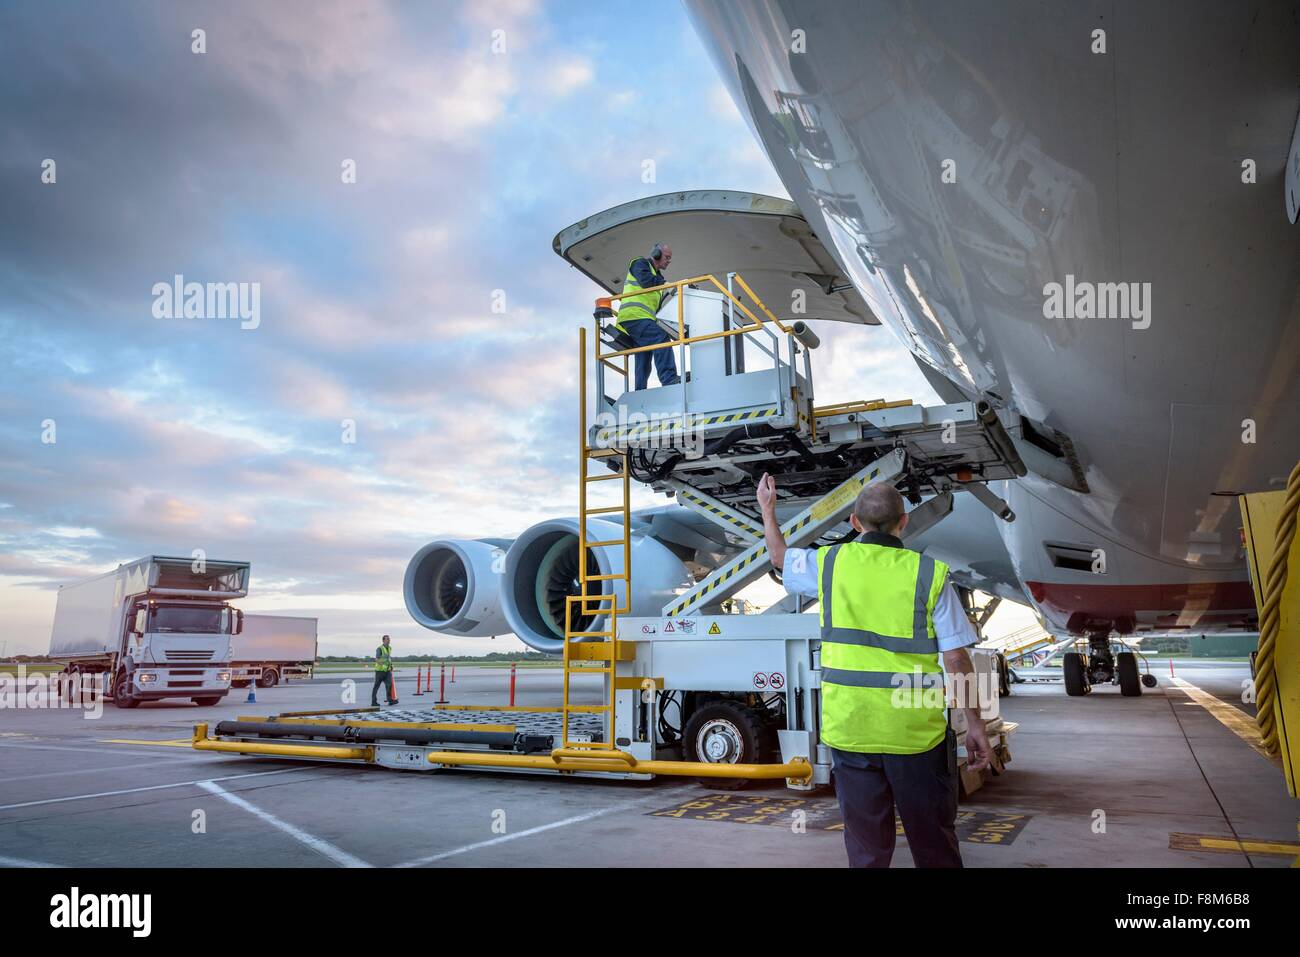 Ground crew attending to A380 aircraft with freight loader at airport - Stock Image